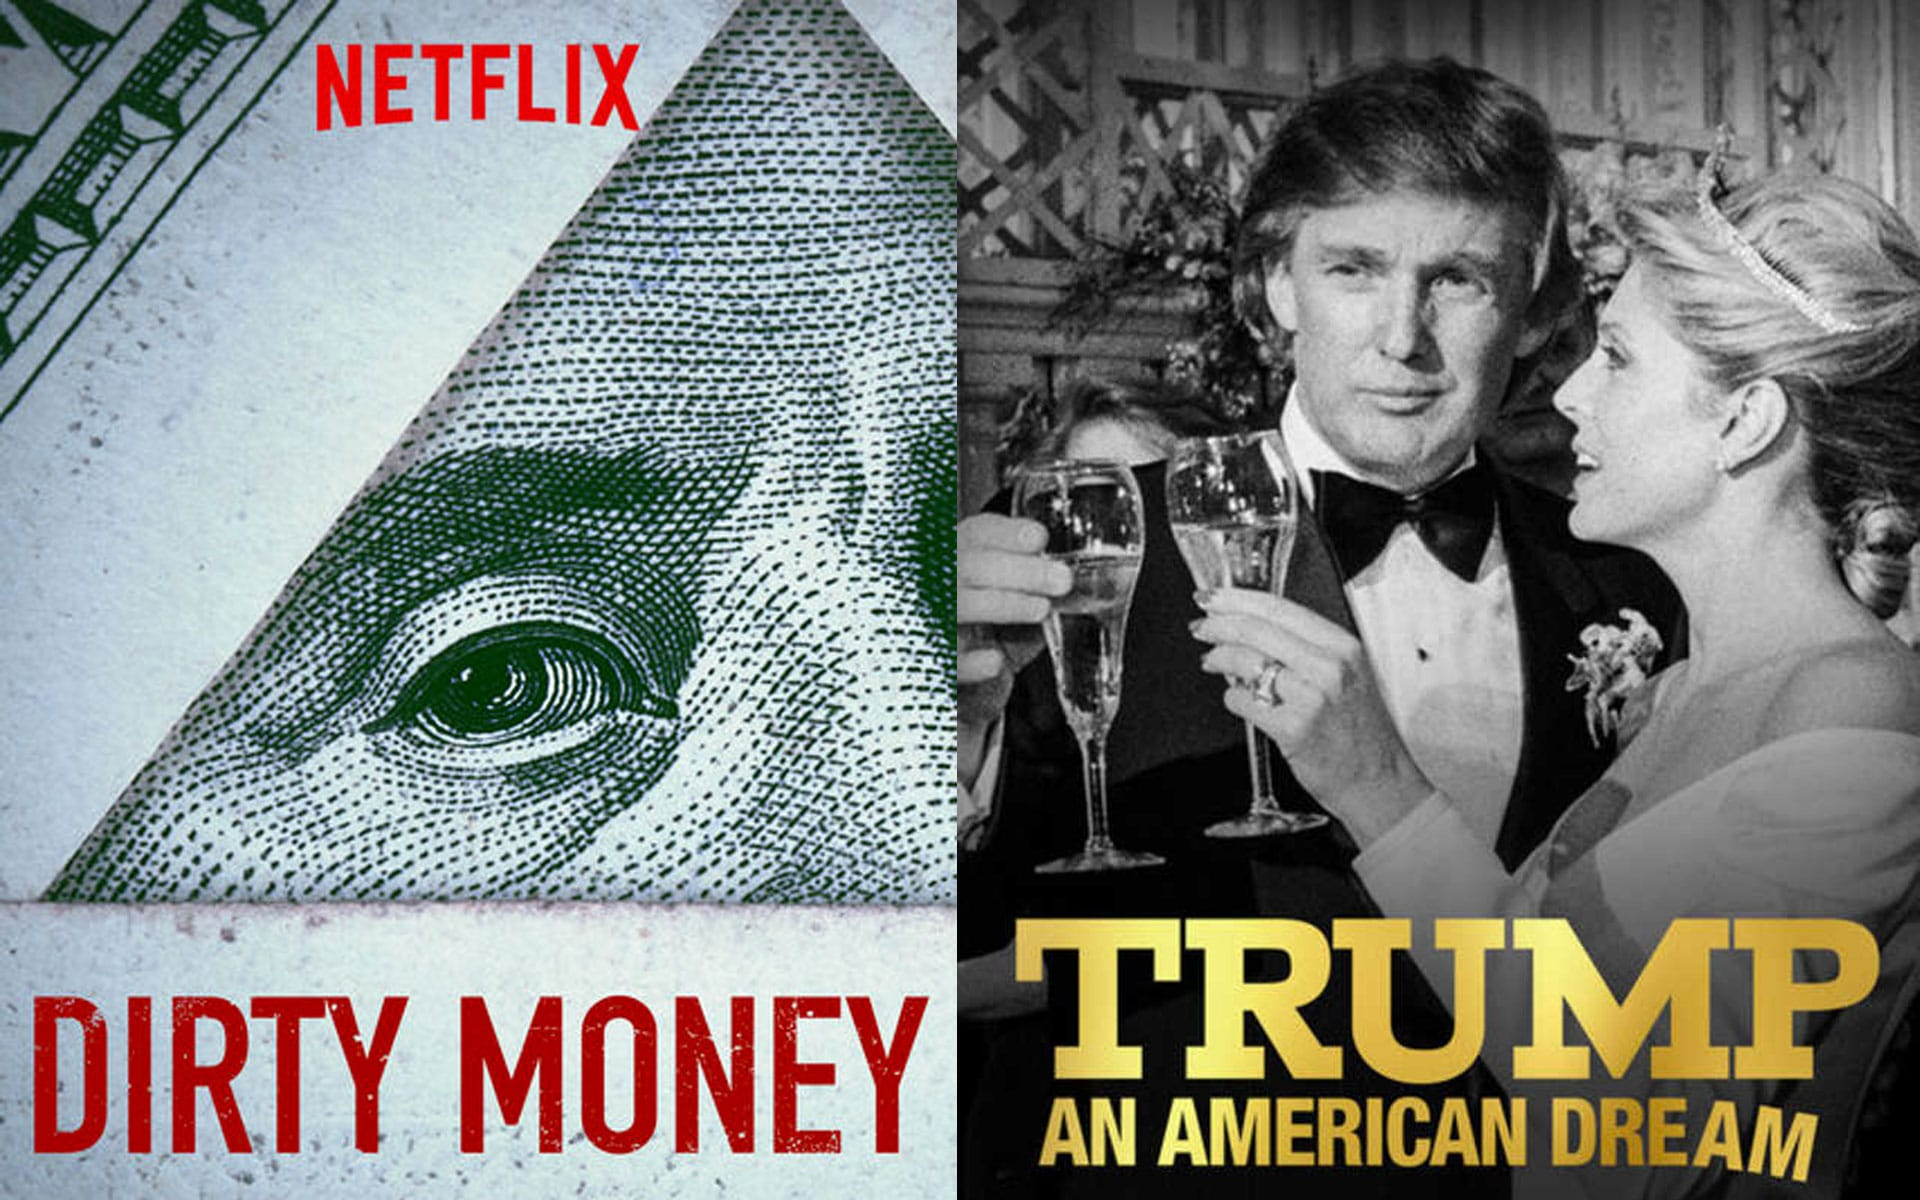 documentaire netflix donald trump dirty money